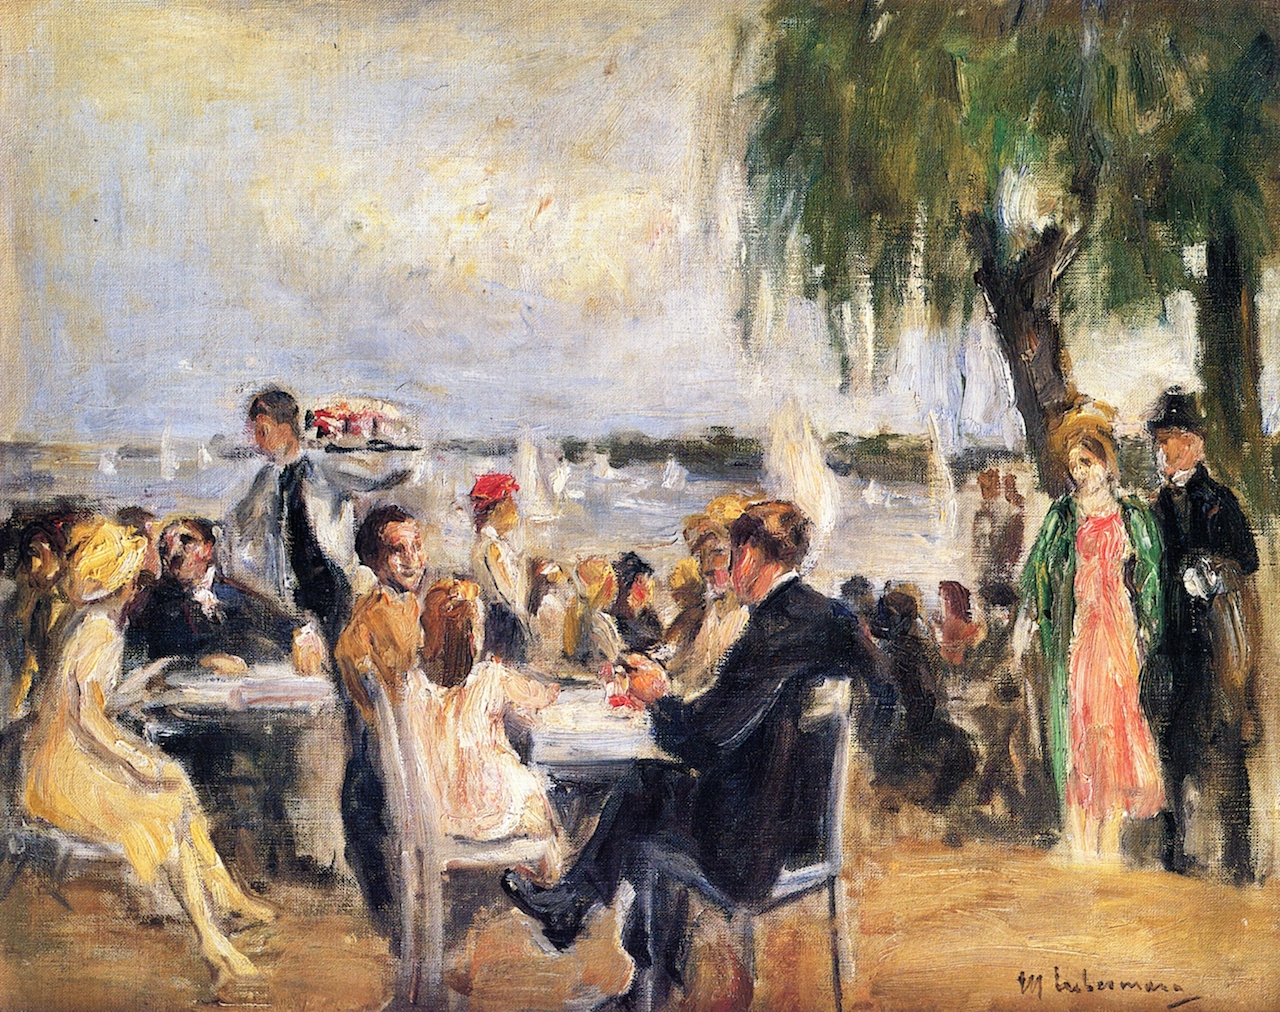 Garden Cafe on the River Elbe by Max Liebermann - circa 1922